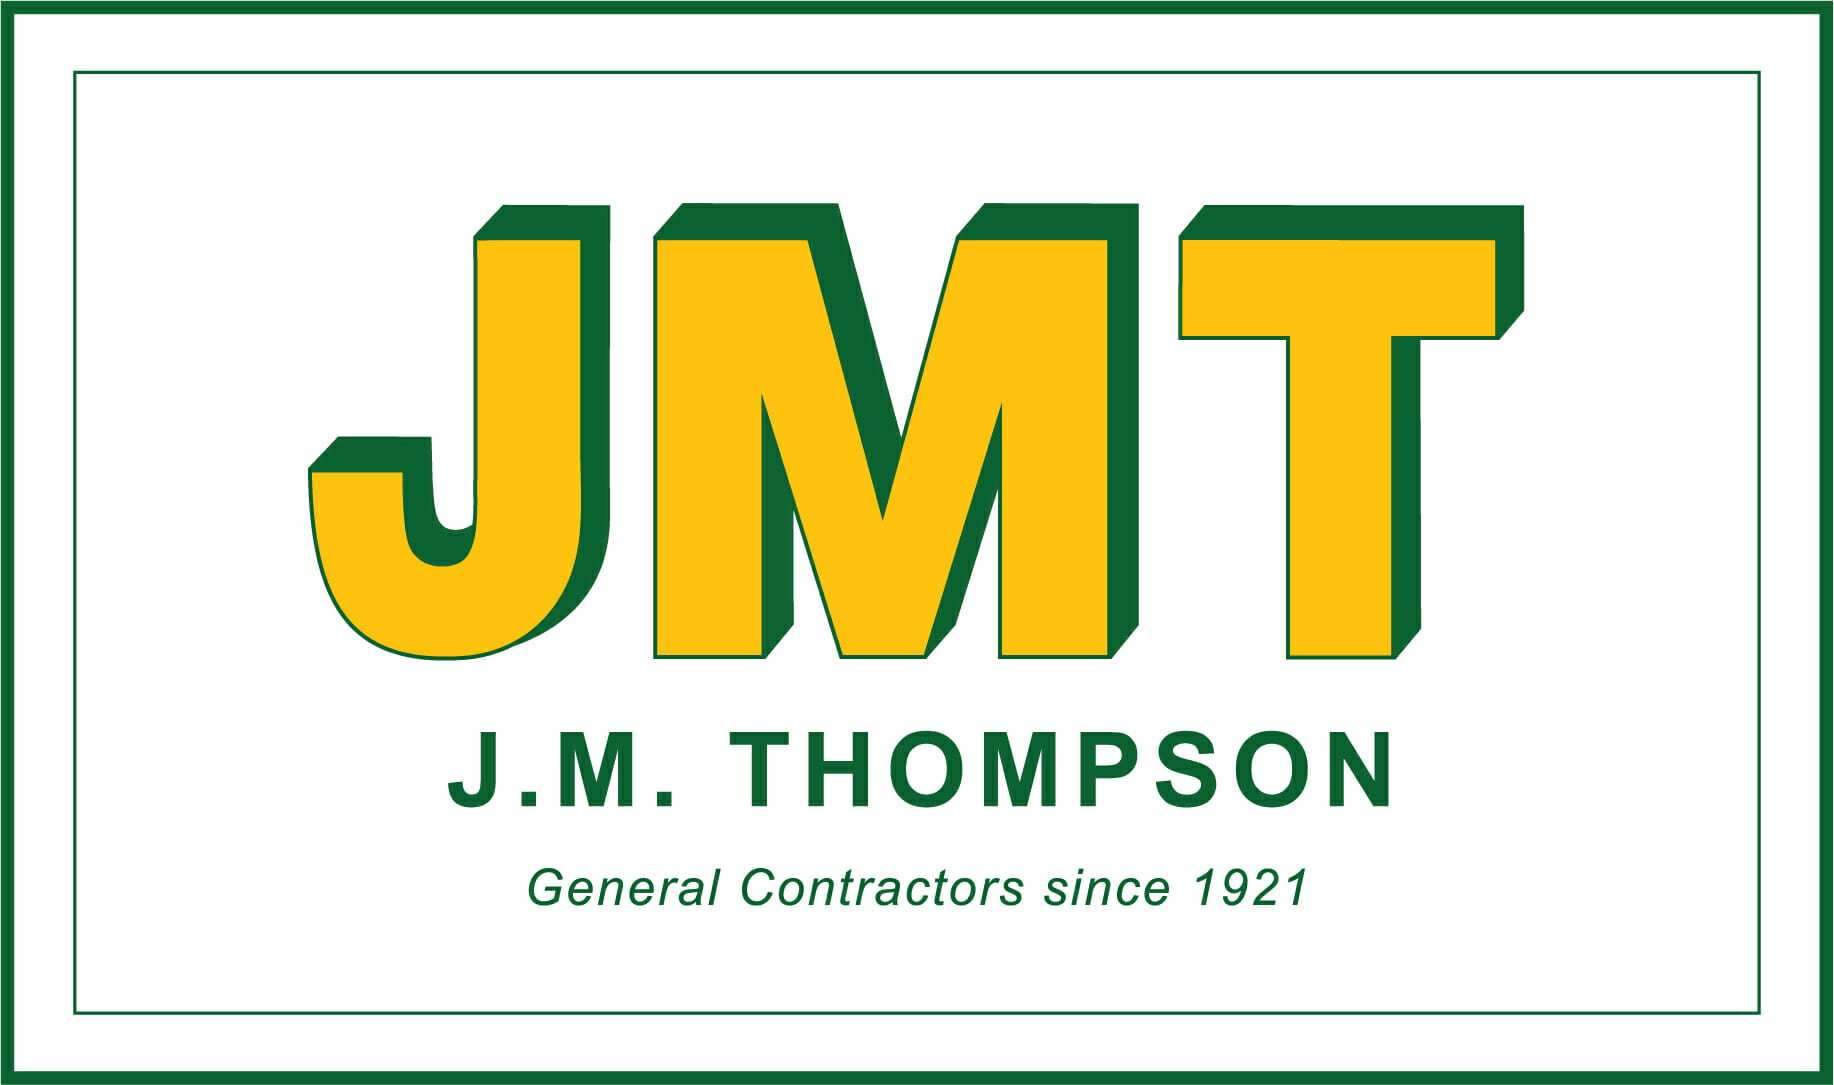 J.M. Thompson - General Contractors since 1921